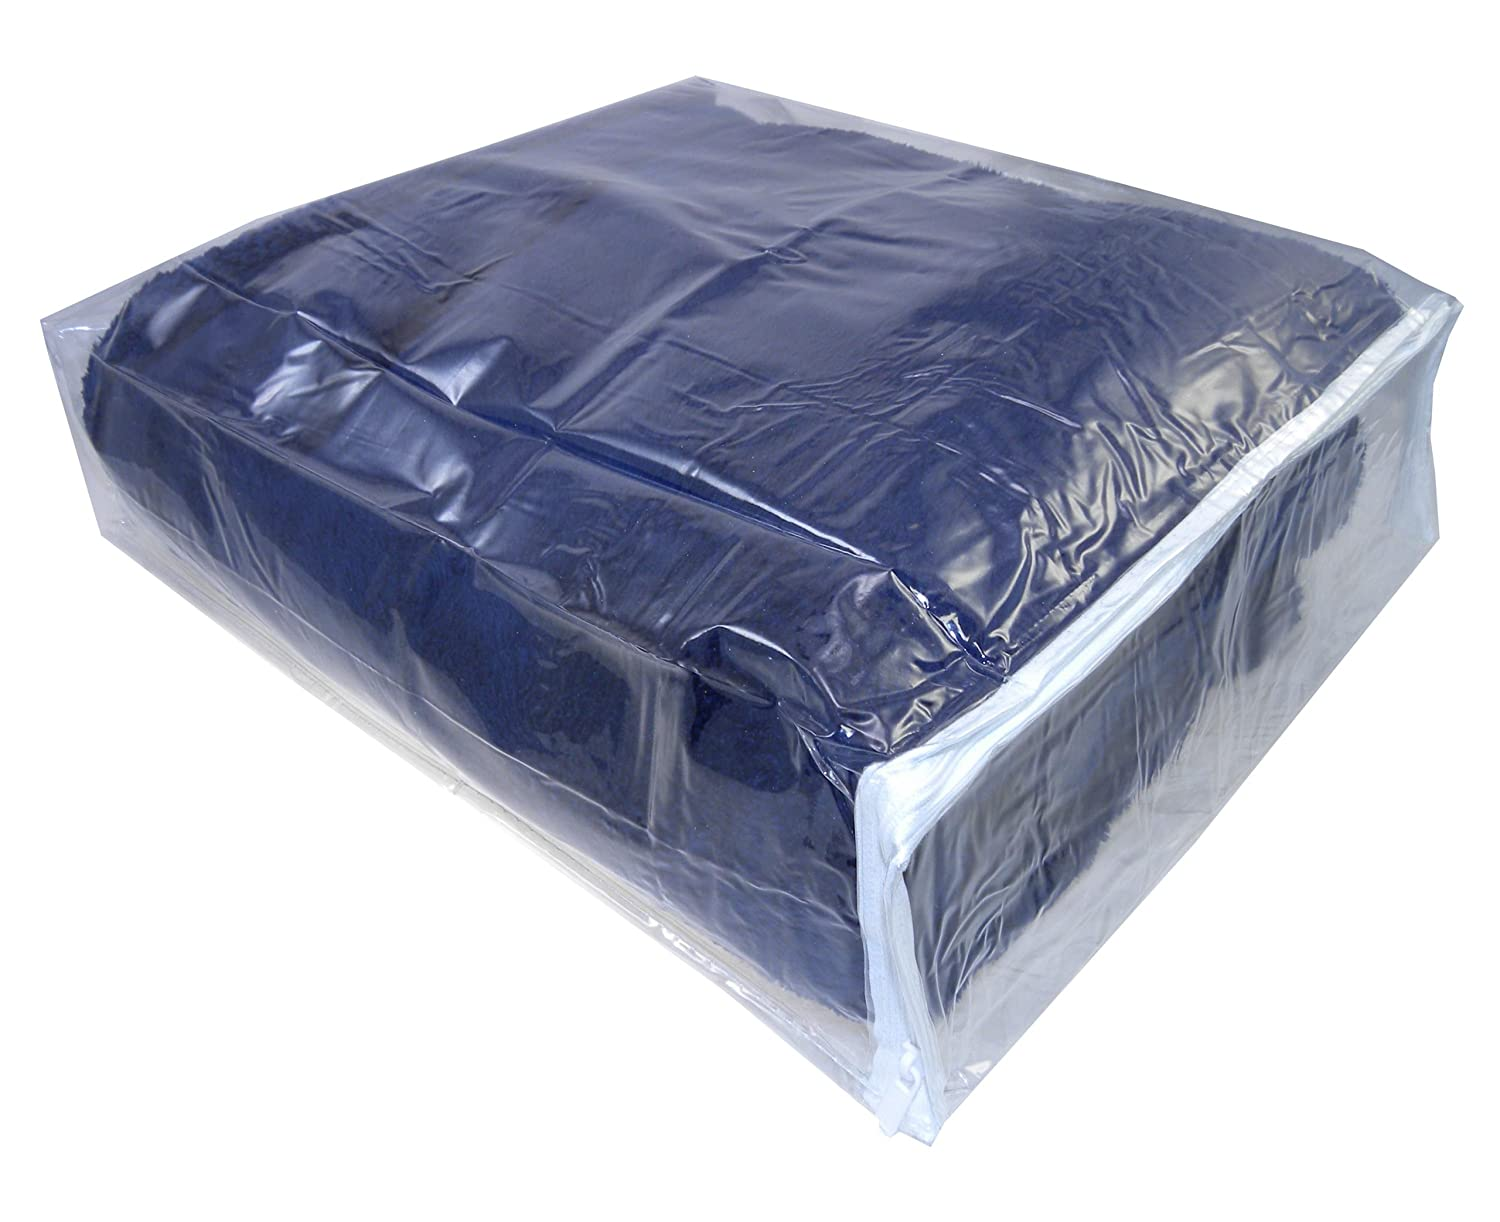 Amazon.com Clear Vinyl Zippered Storage Bags 15x18x4 Inch Set of 5 AK Plastics by AntiqueKitchen Home u0026 Kitchen  sc 1 st  Amazon.com : zip storage bags  - Aquiesqueretaro.Com